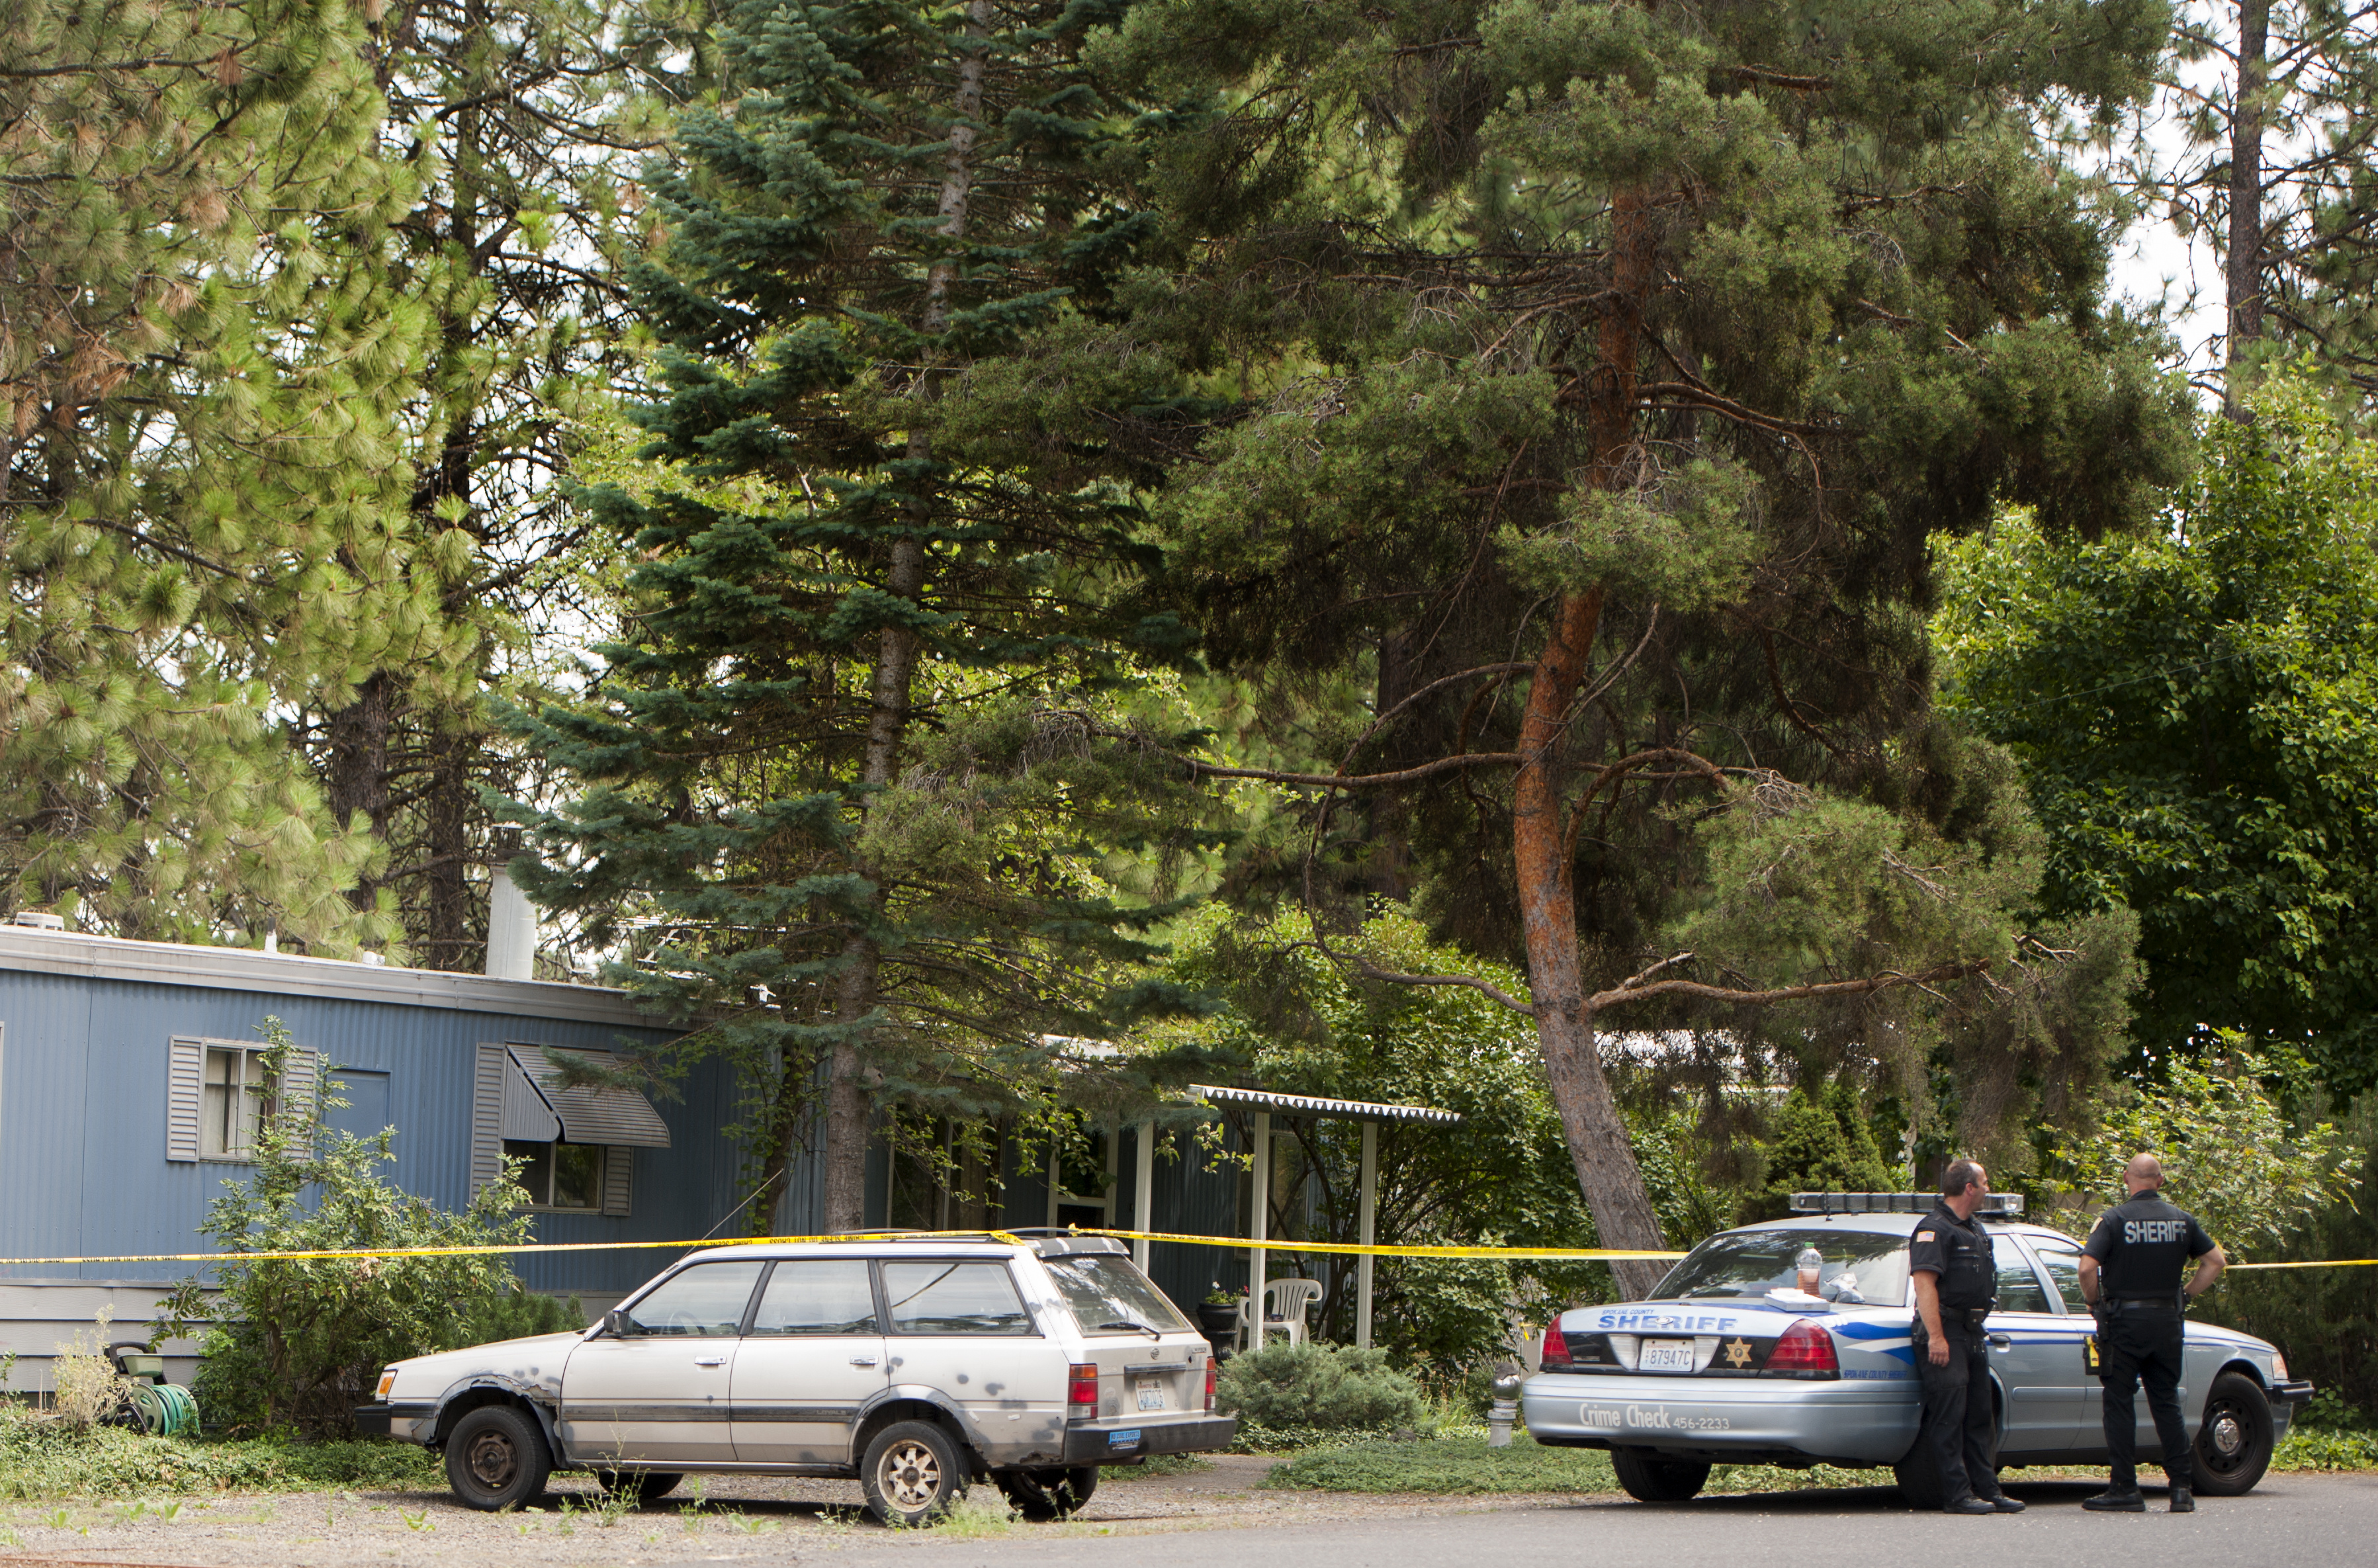 Woman's found on porch of a mobile home | The Spokesman-Review on mobile blue car, recreational car, hybrid camper motorhome car, motorhome with car, animated car, mobile car wash, mobile car service, rat rod show car,